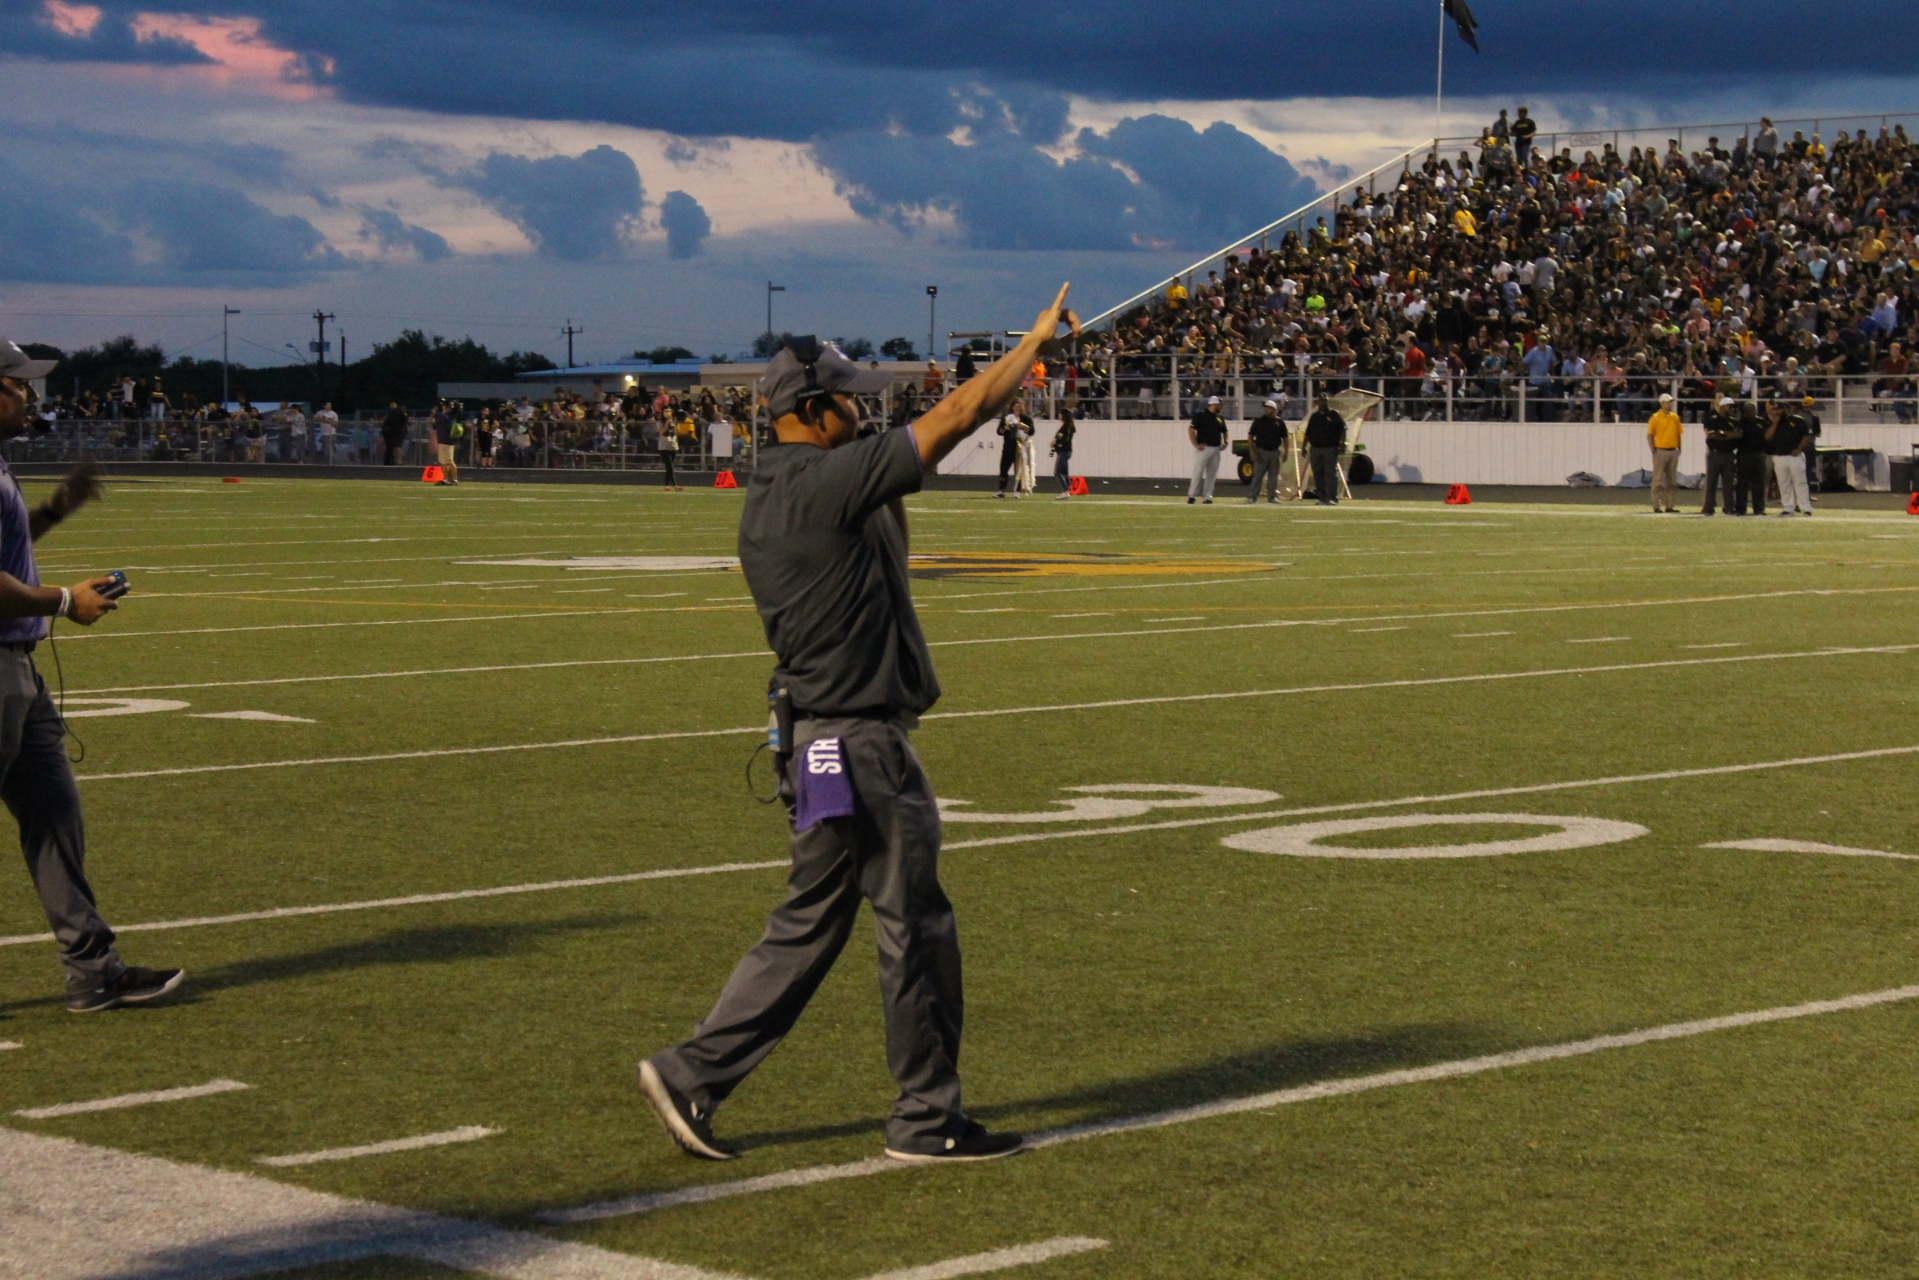 A man making a call at a high school football game.